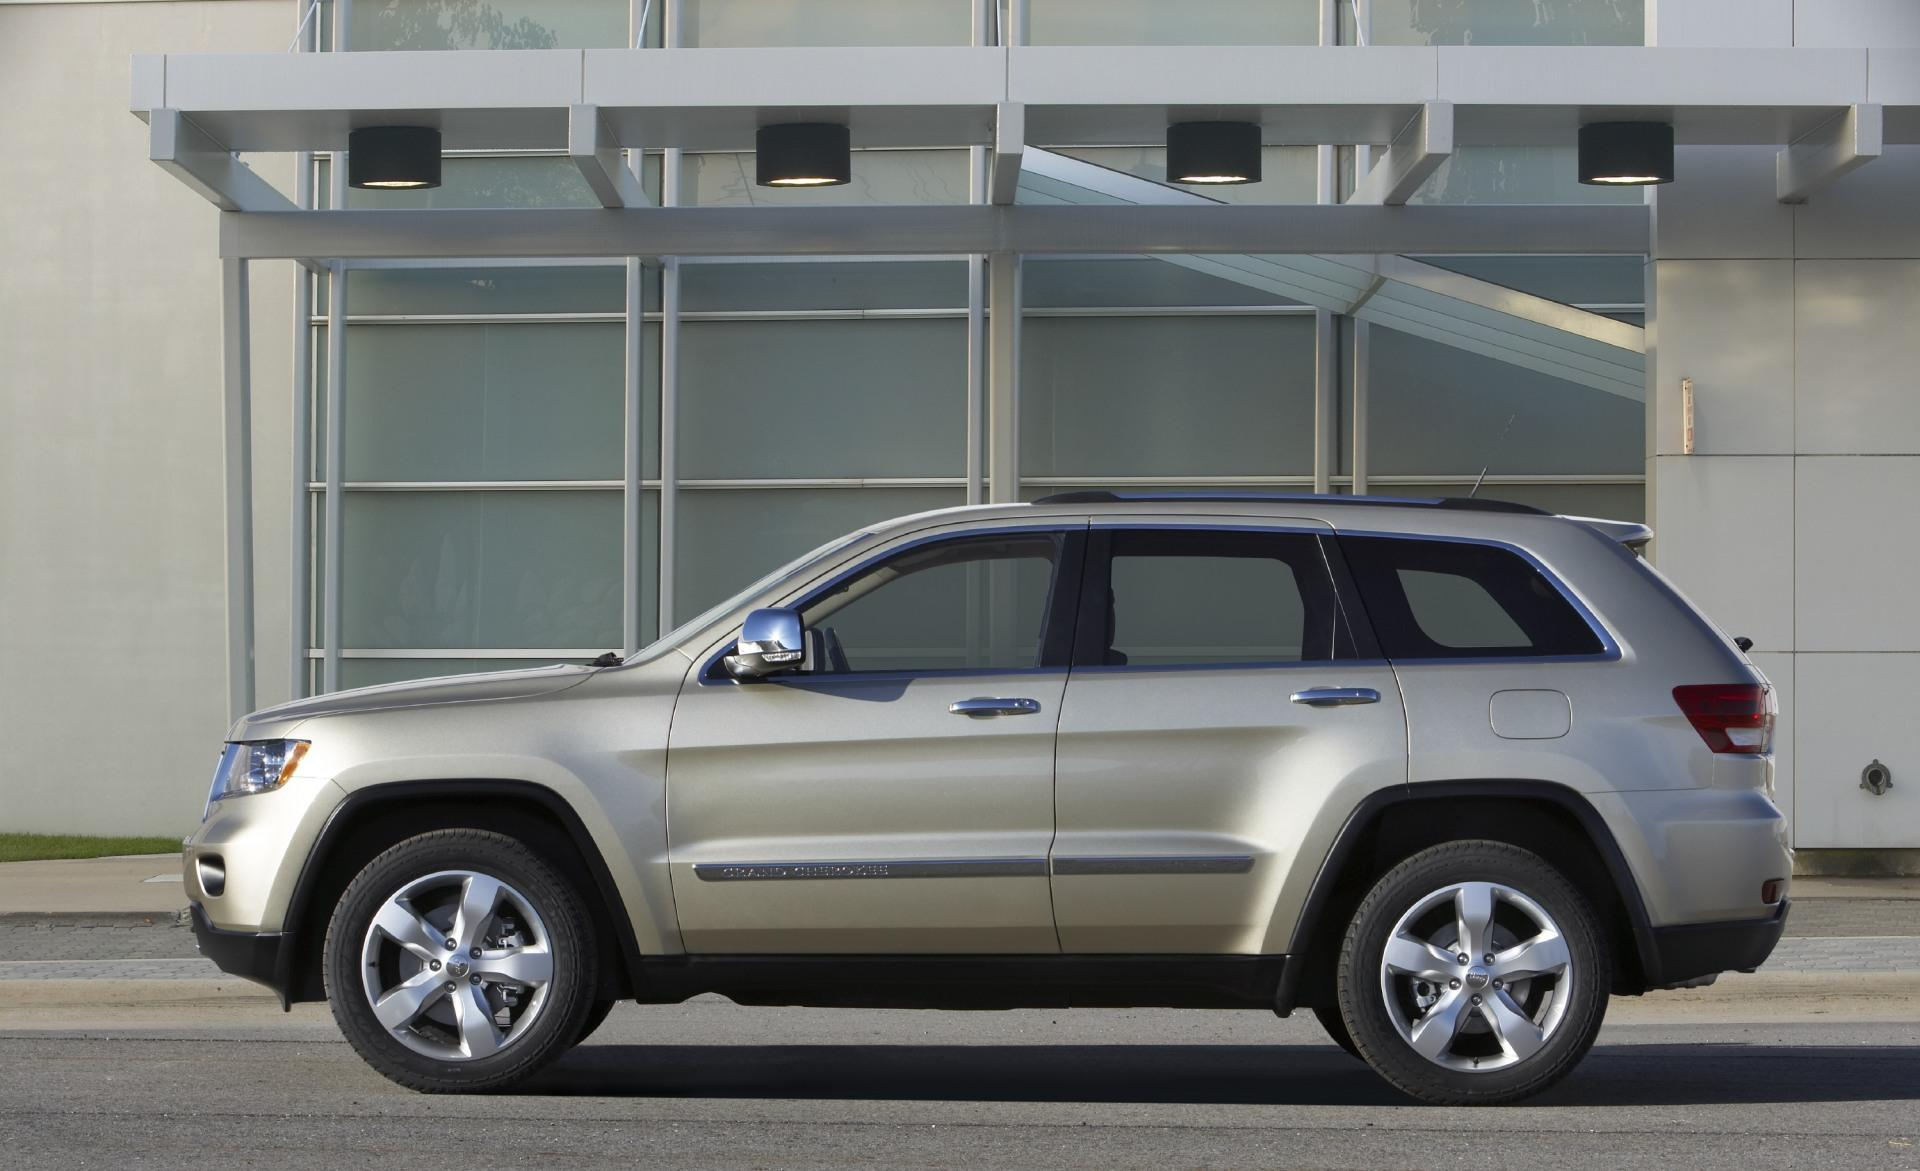 2011 Jeep Grand Cherokee News and Information